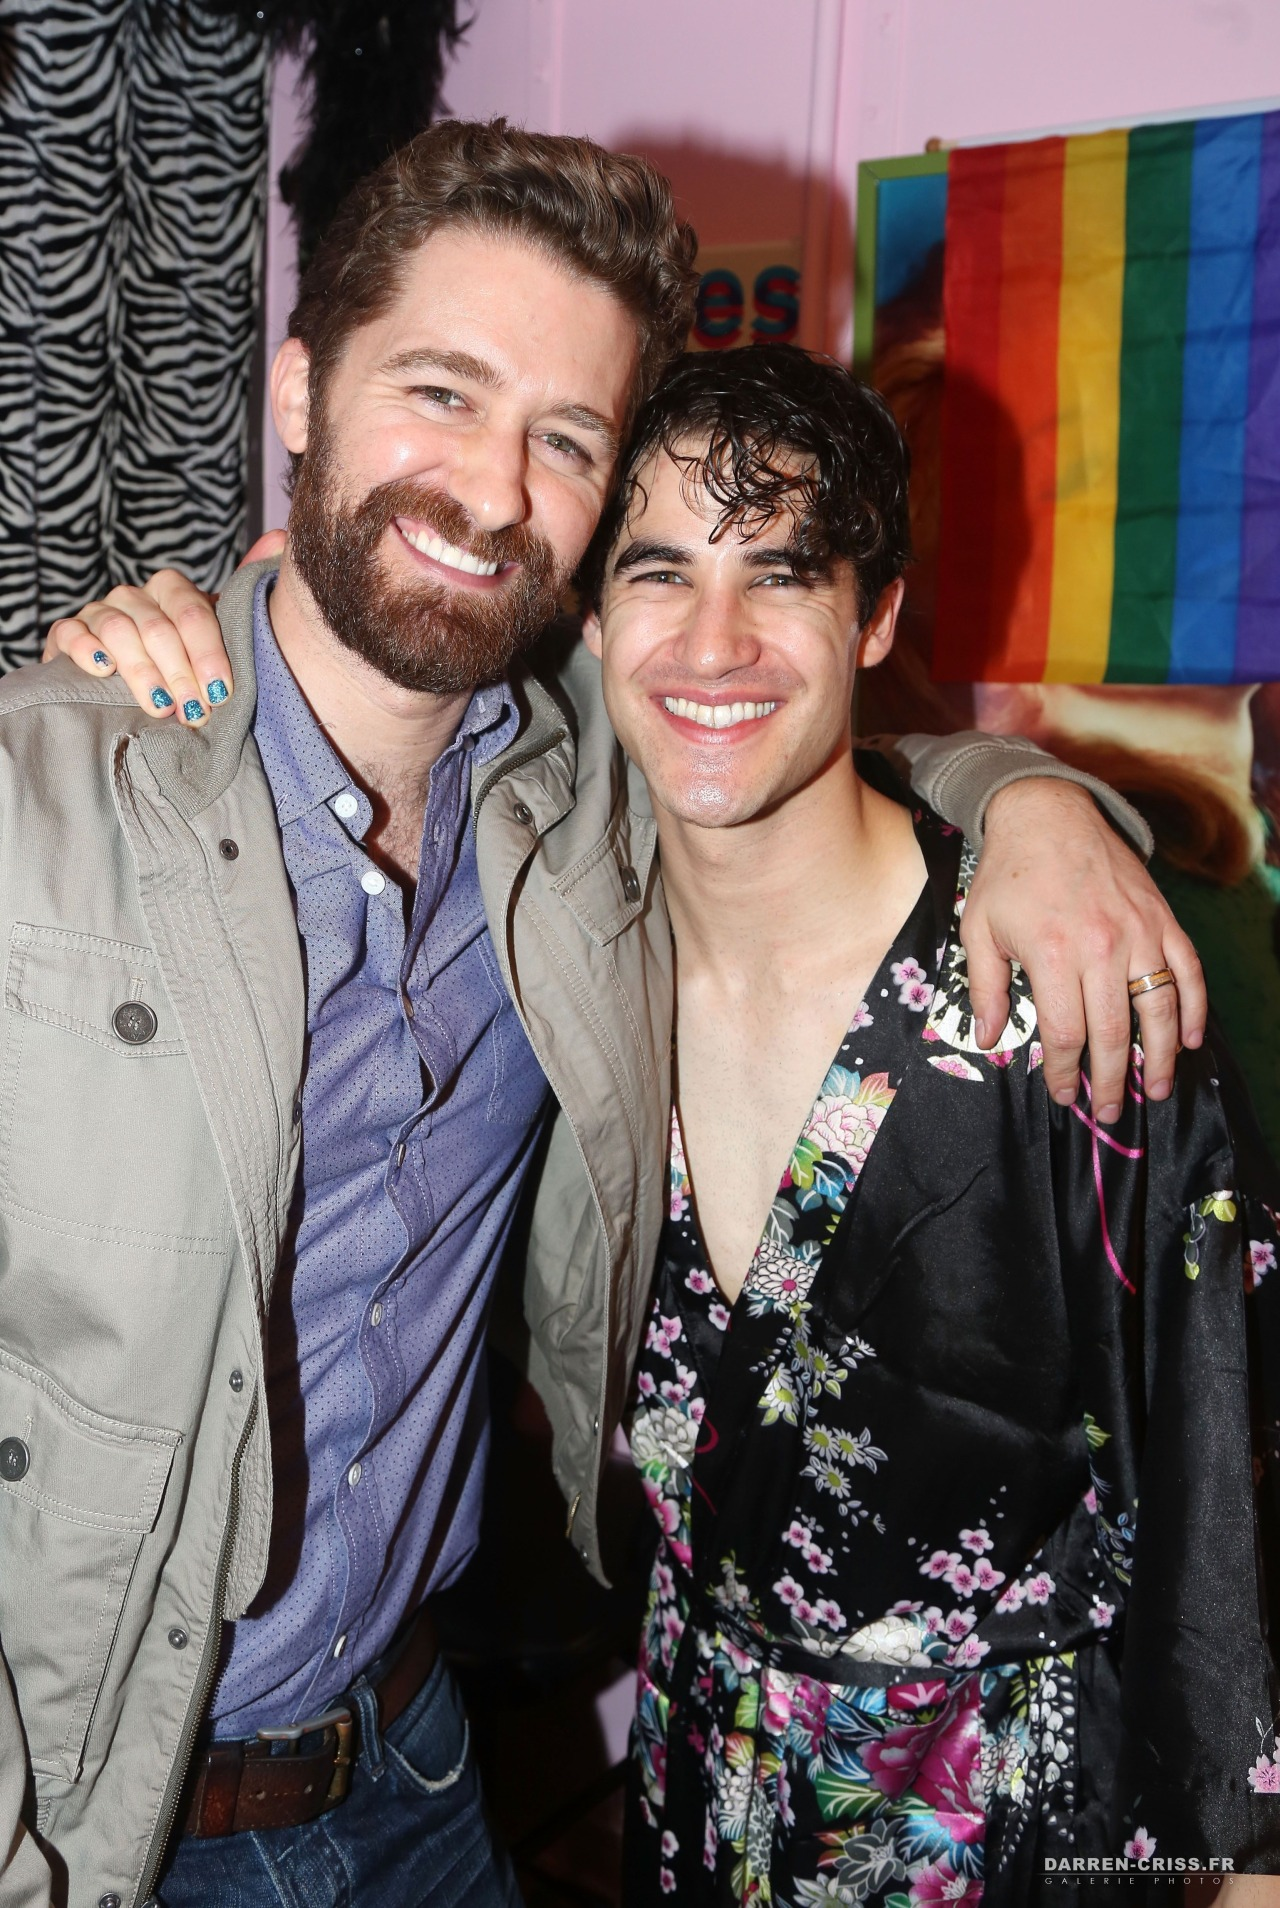 Topics tagged under hedwigonbroadway on Darren Criss Fan Community Tumblr_nqpgot07Yr1qayexuo6_1280